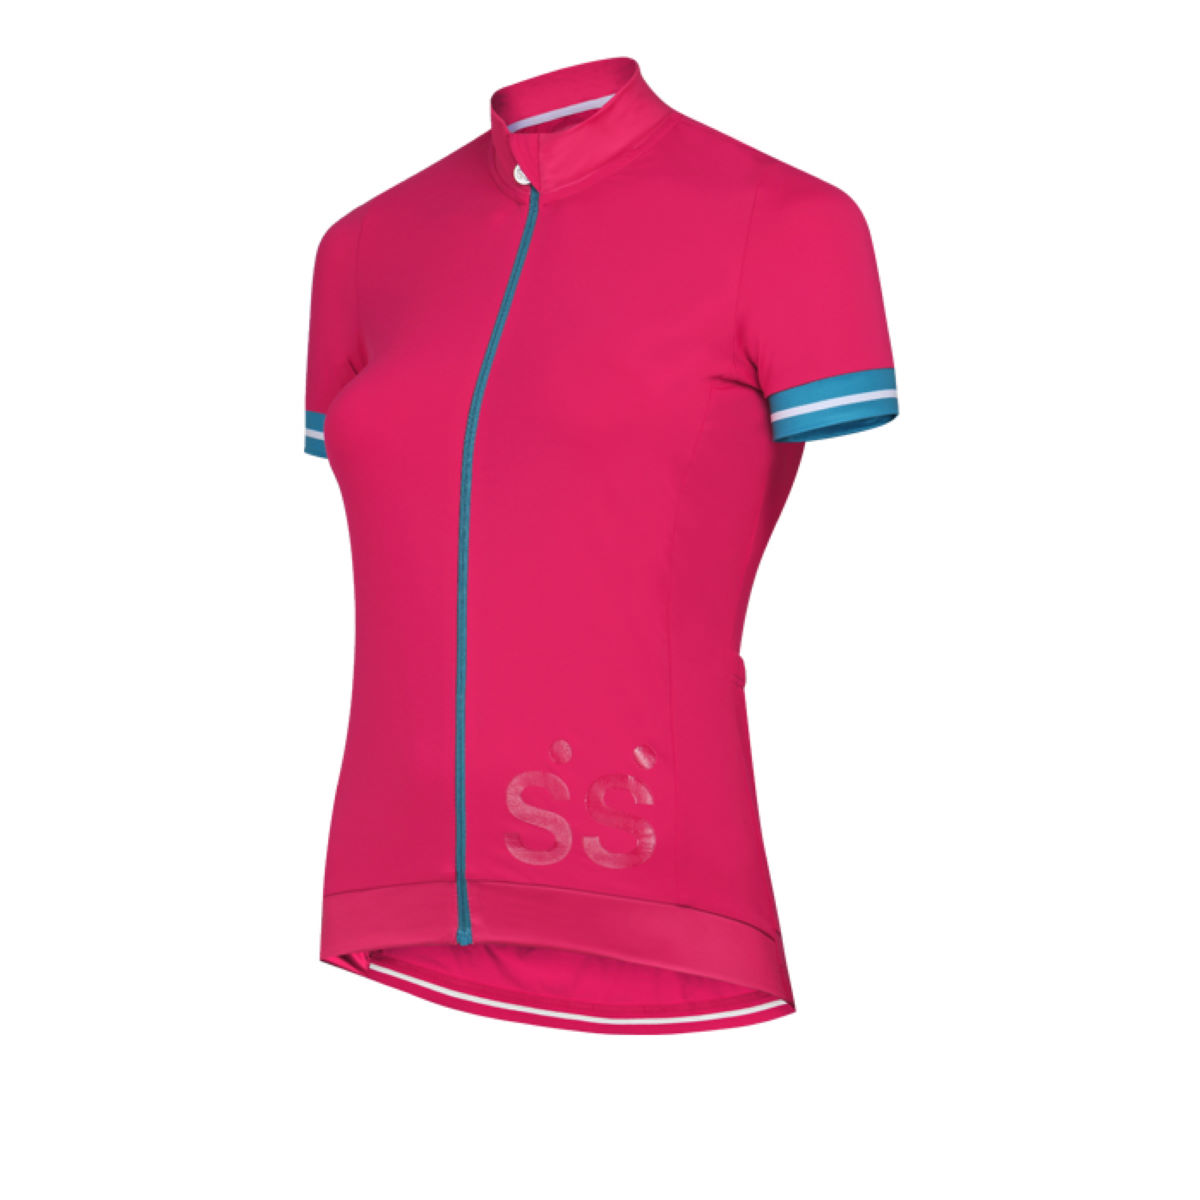 Maillot Femme LaClassica Pro Team - XS Diva/Guatemala Maillots